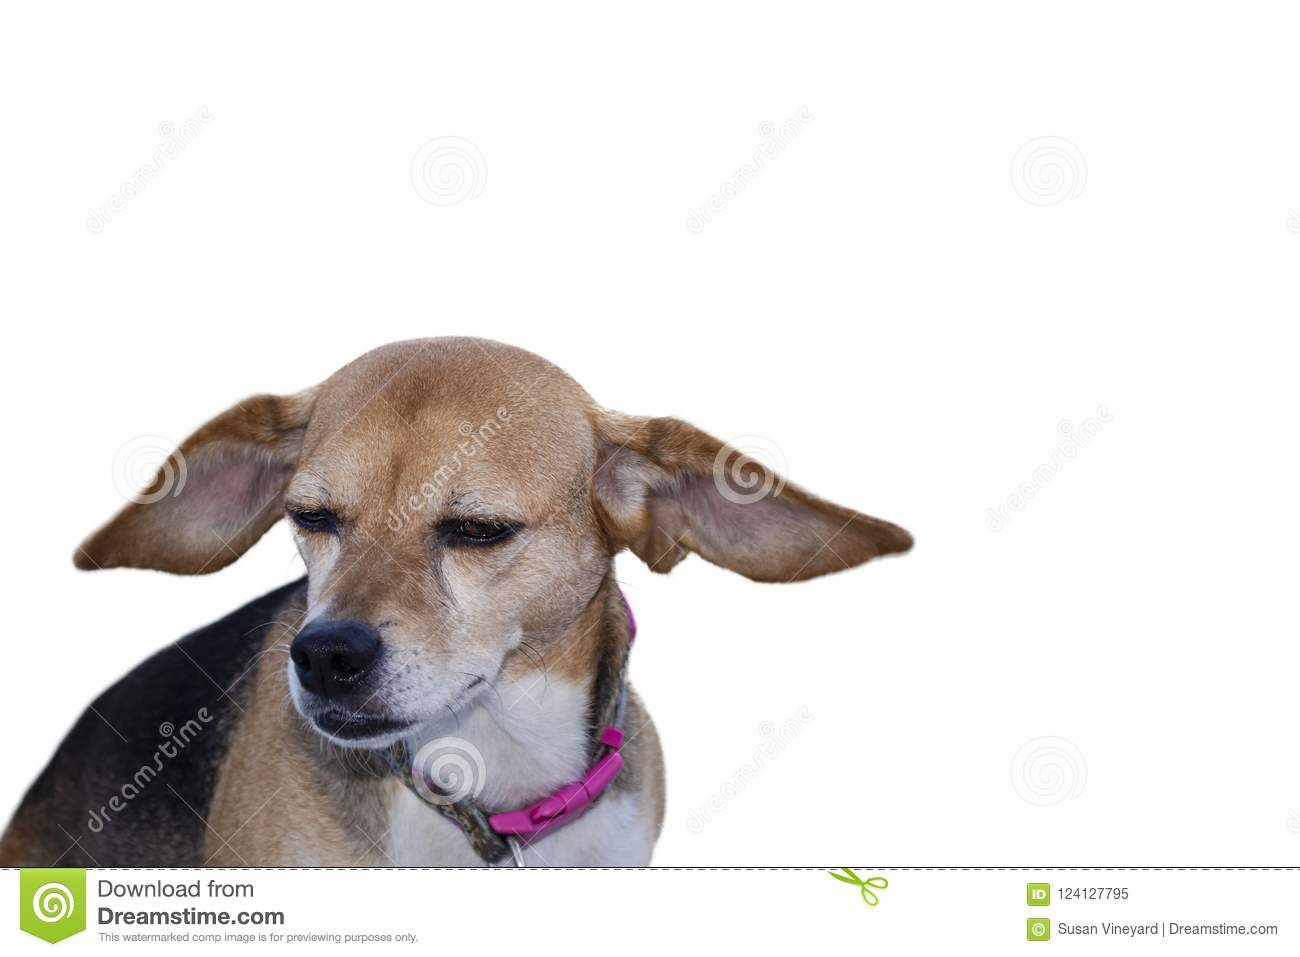 Floppy ears - beagle mix dog with floppy ears flying isolated on white with room for copy